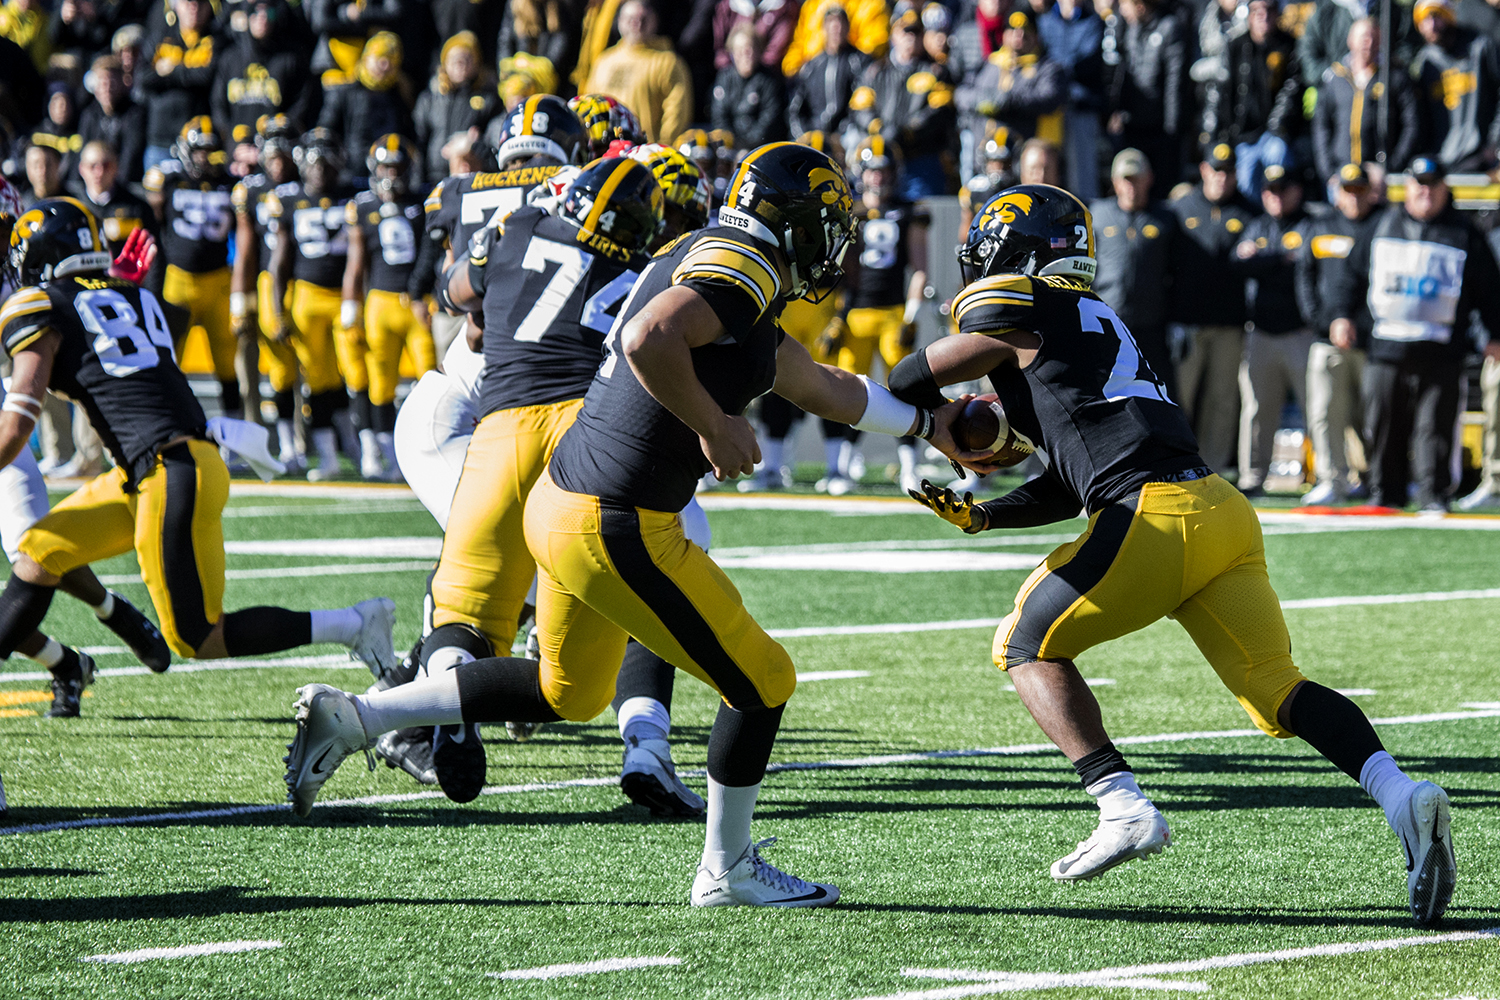 Iowa quarterback Nate Stanley hands the ball off to running back Ivory Kelley-Martin during a football game between Iowa and Maryland in Kinnick Stadium on Saturday, October 20, 2018. The Hawkeyes defeated the Terrapins, 23-0.